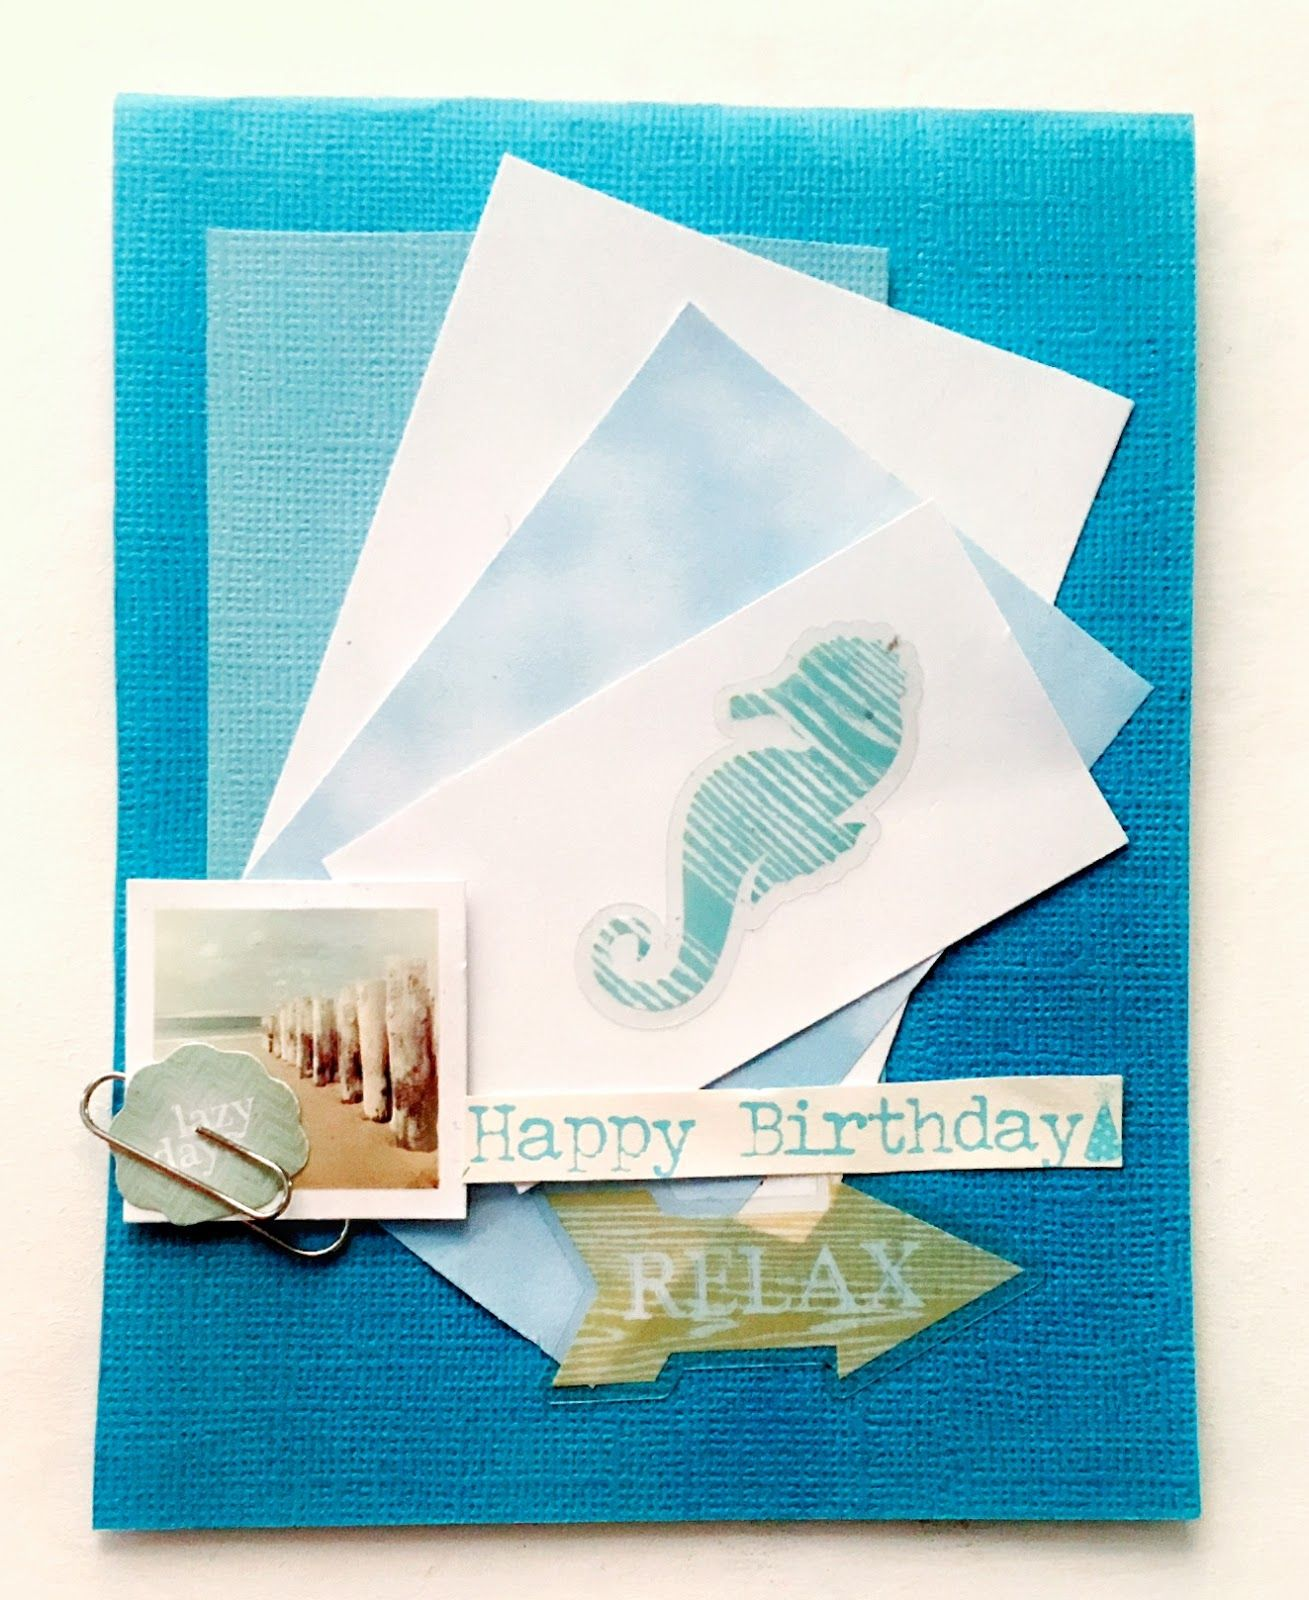 how to make your own handmade card templates with the easiest mobile app ever birthday coastal handmade productsthank you - Make Your Own Thank You Cards